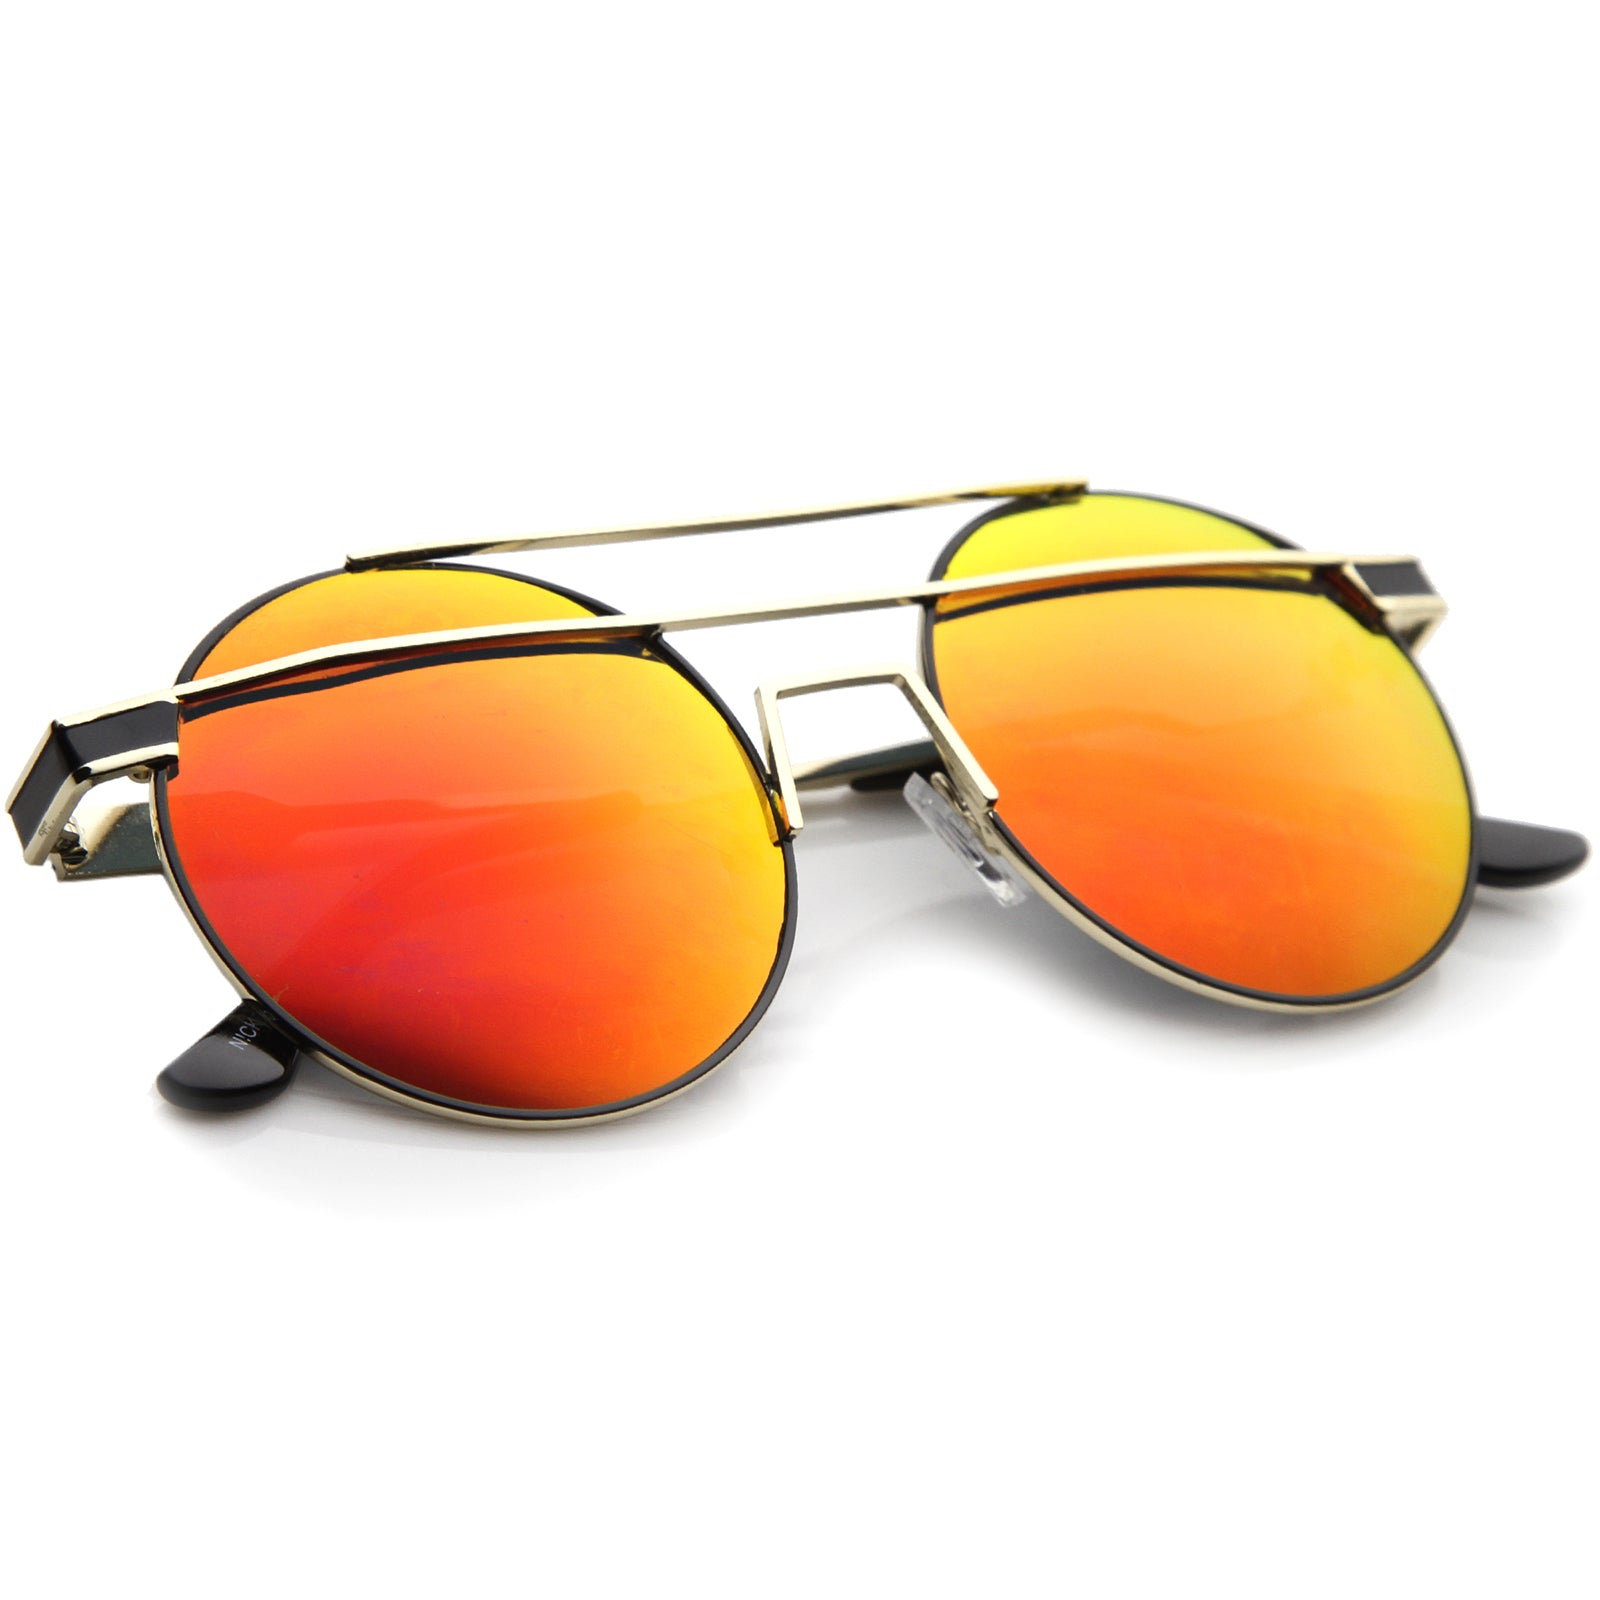 Modern Metal Frame Double Bridge Colored Mirror Lens Round Sunglasses 59mm - sunglass.la - 24